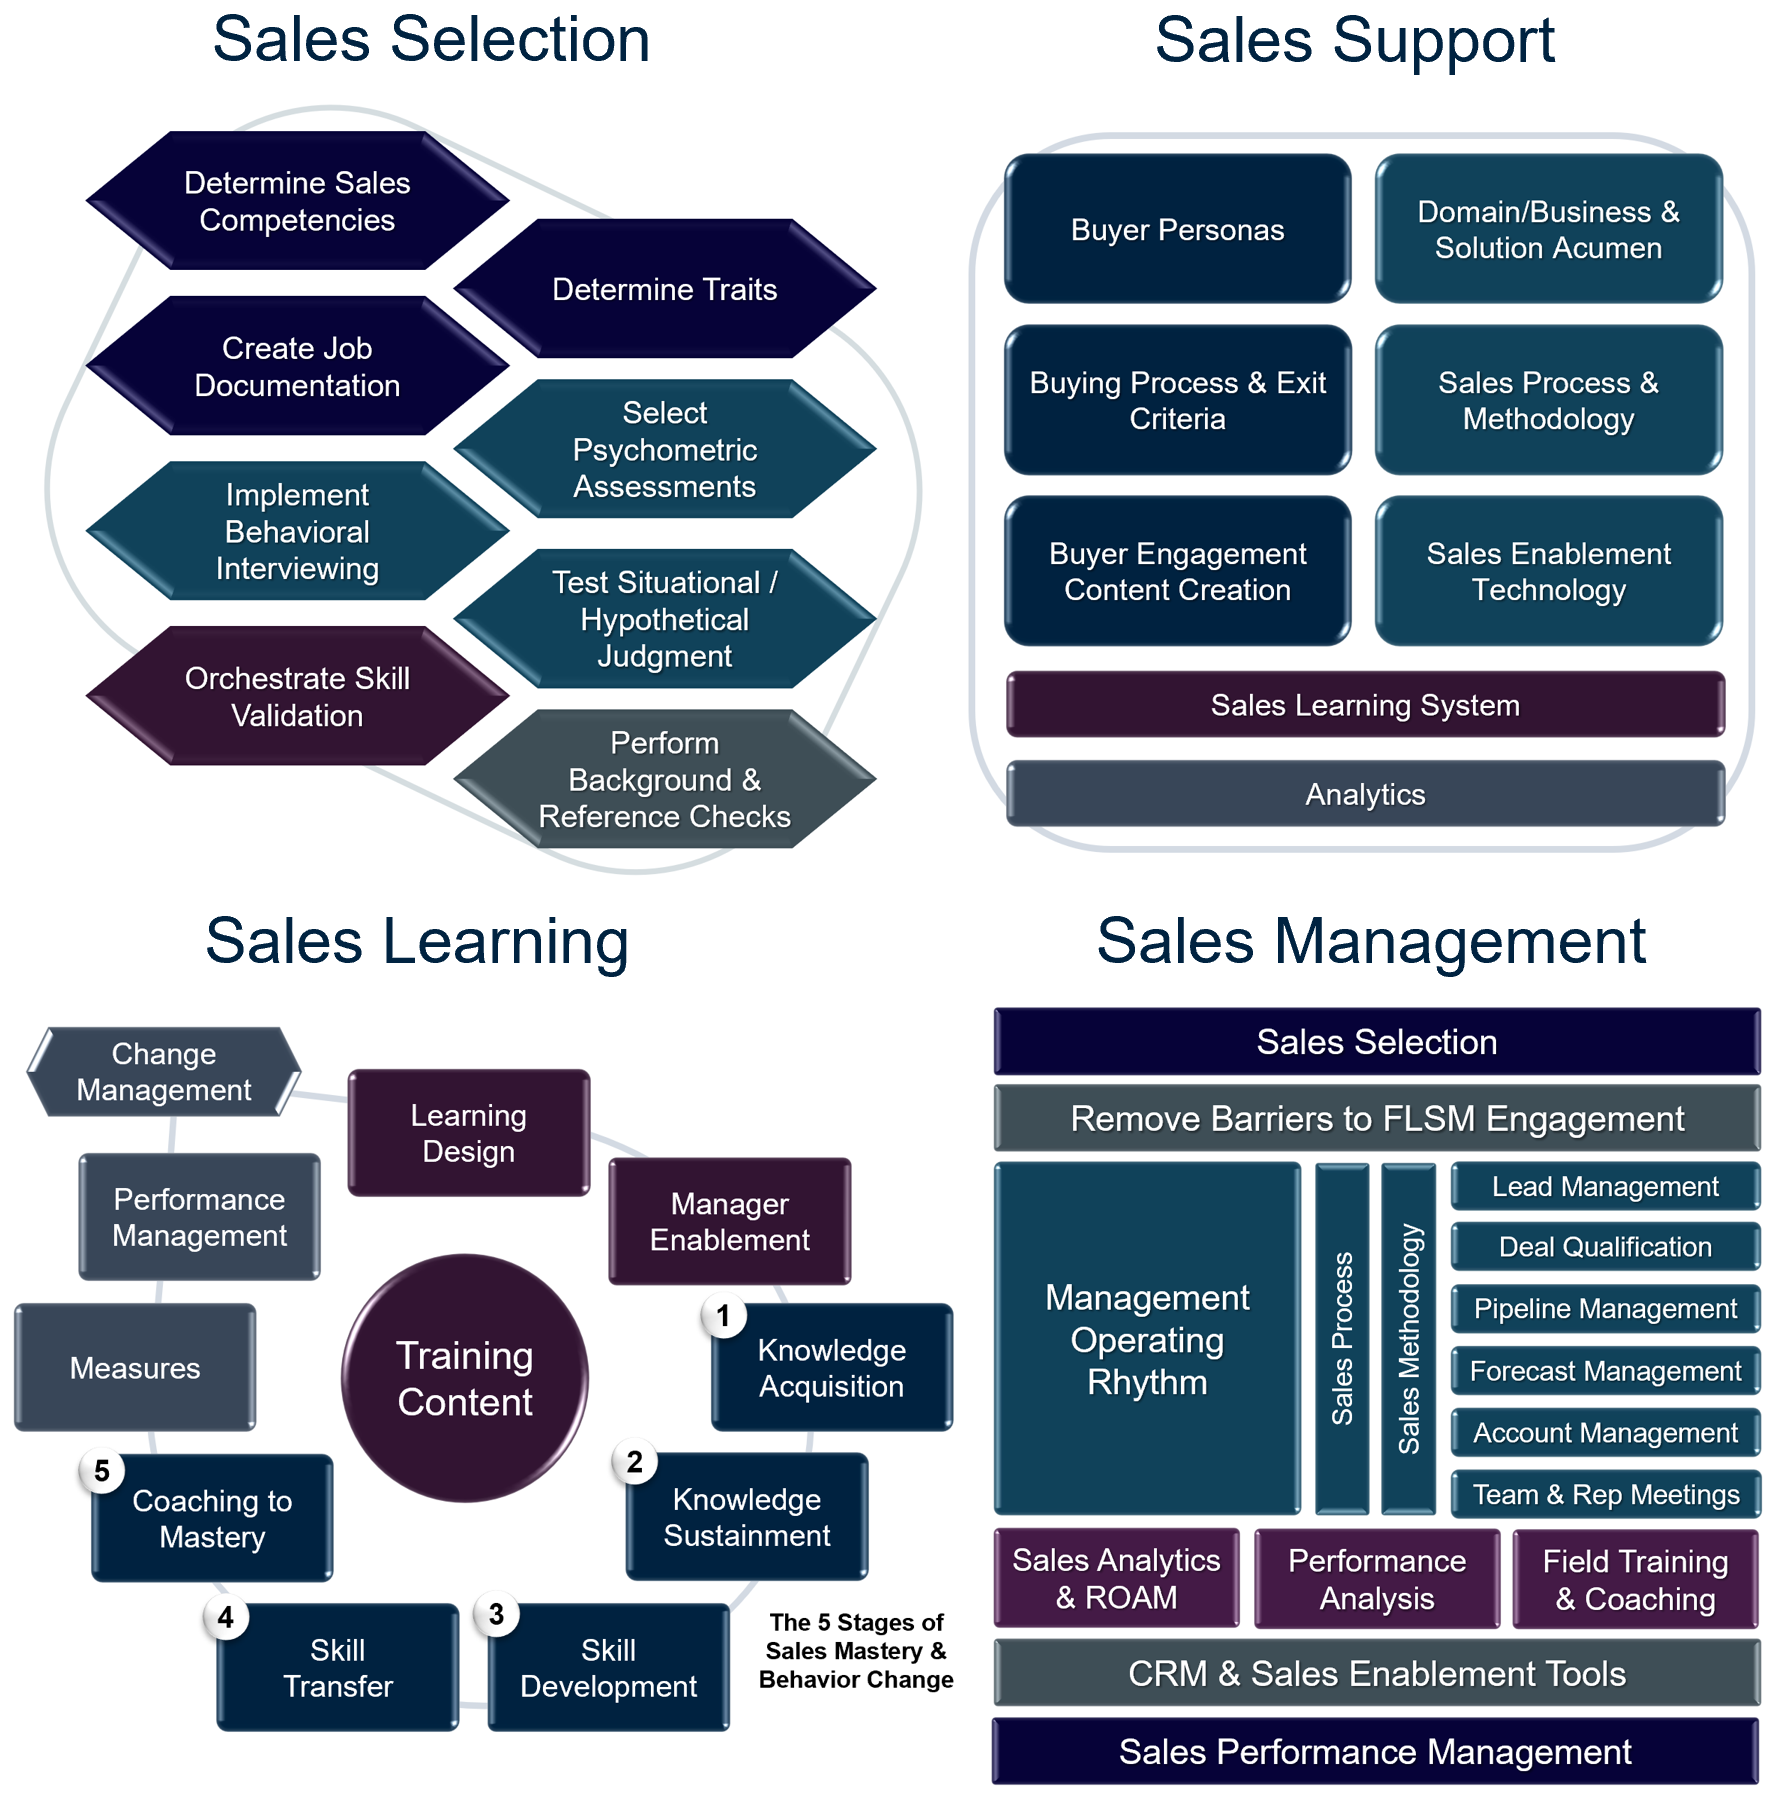 Transform Your Sales Results with a Systems Approach - Part